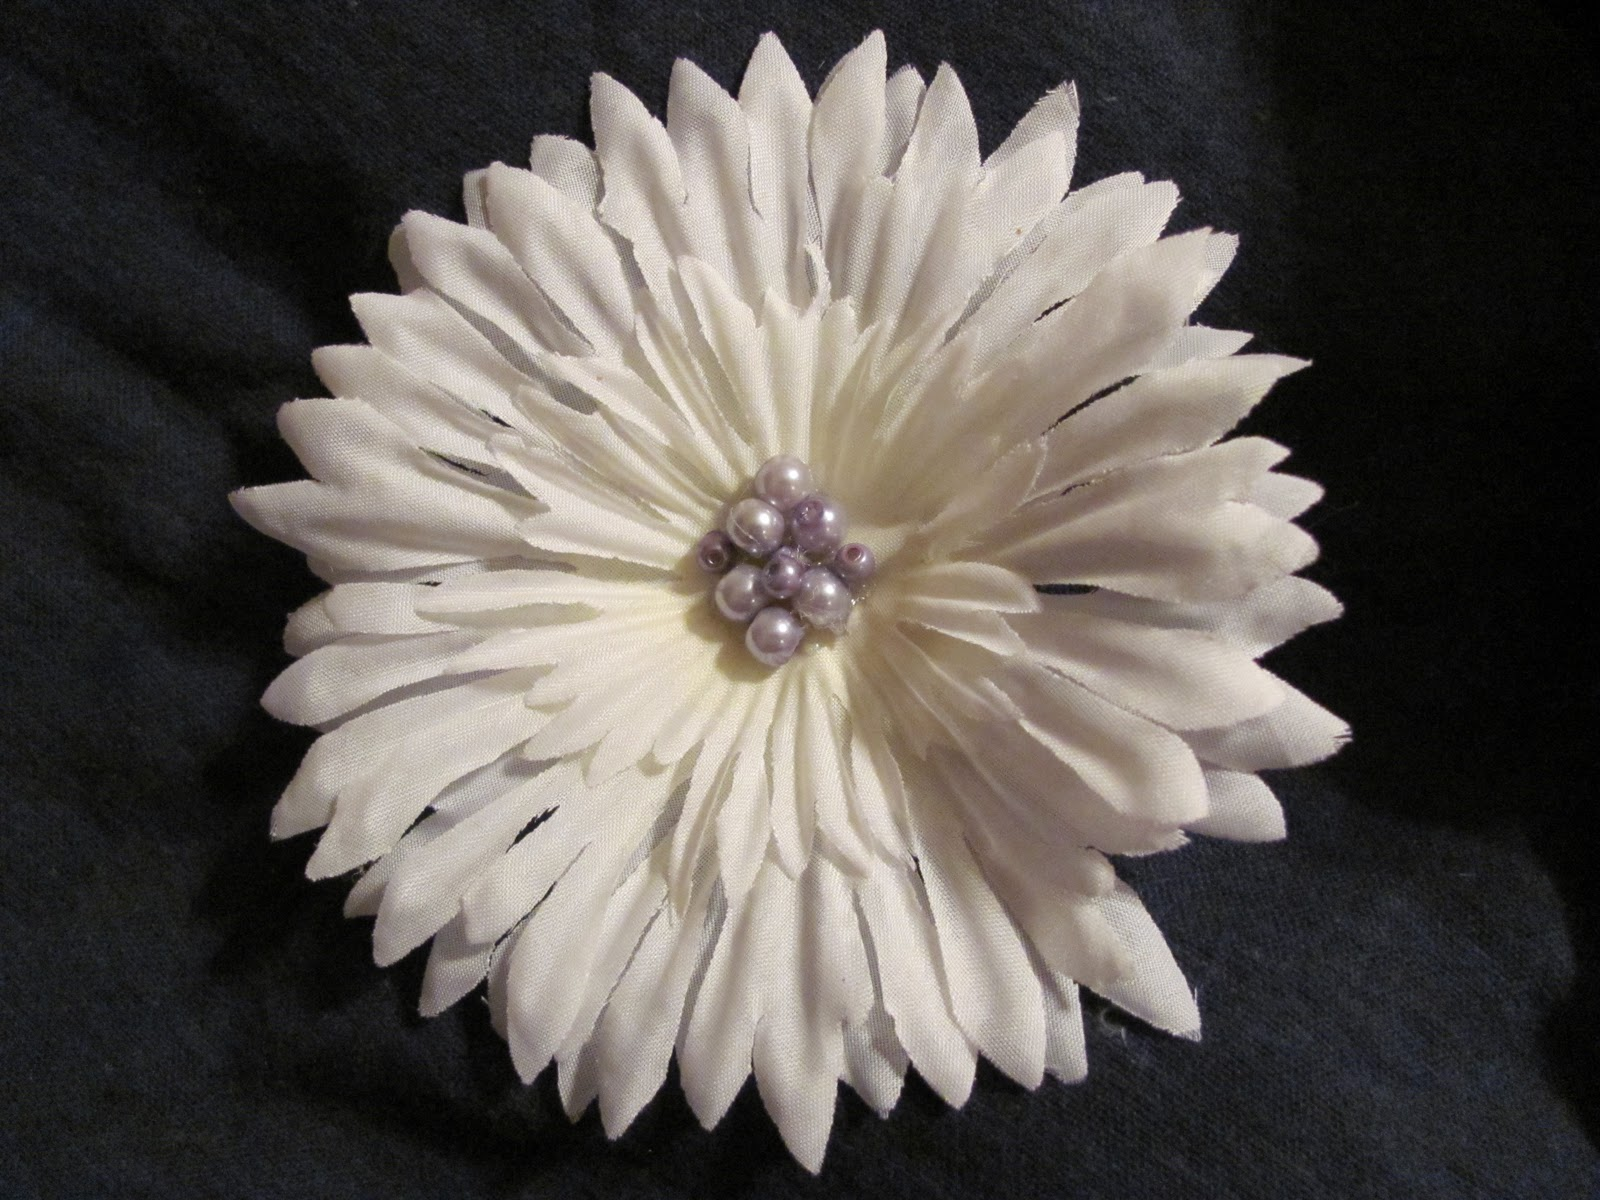 Bow peep accessories large white flower hair clips large white flower hair clip with purple glass beads mightylinksfo